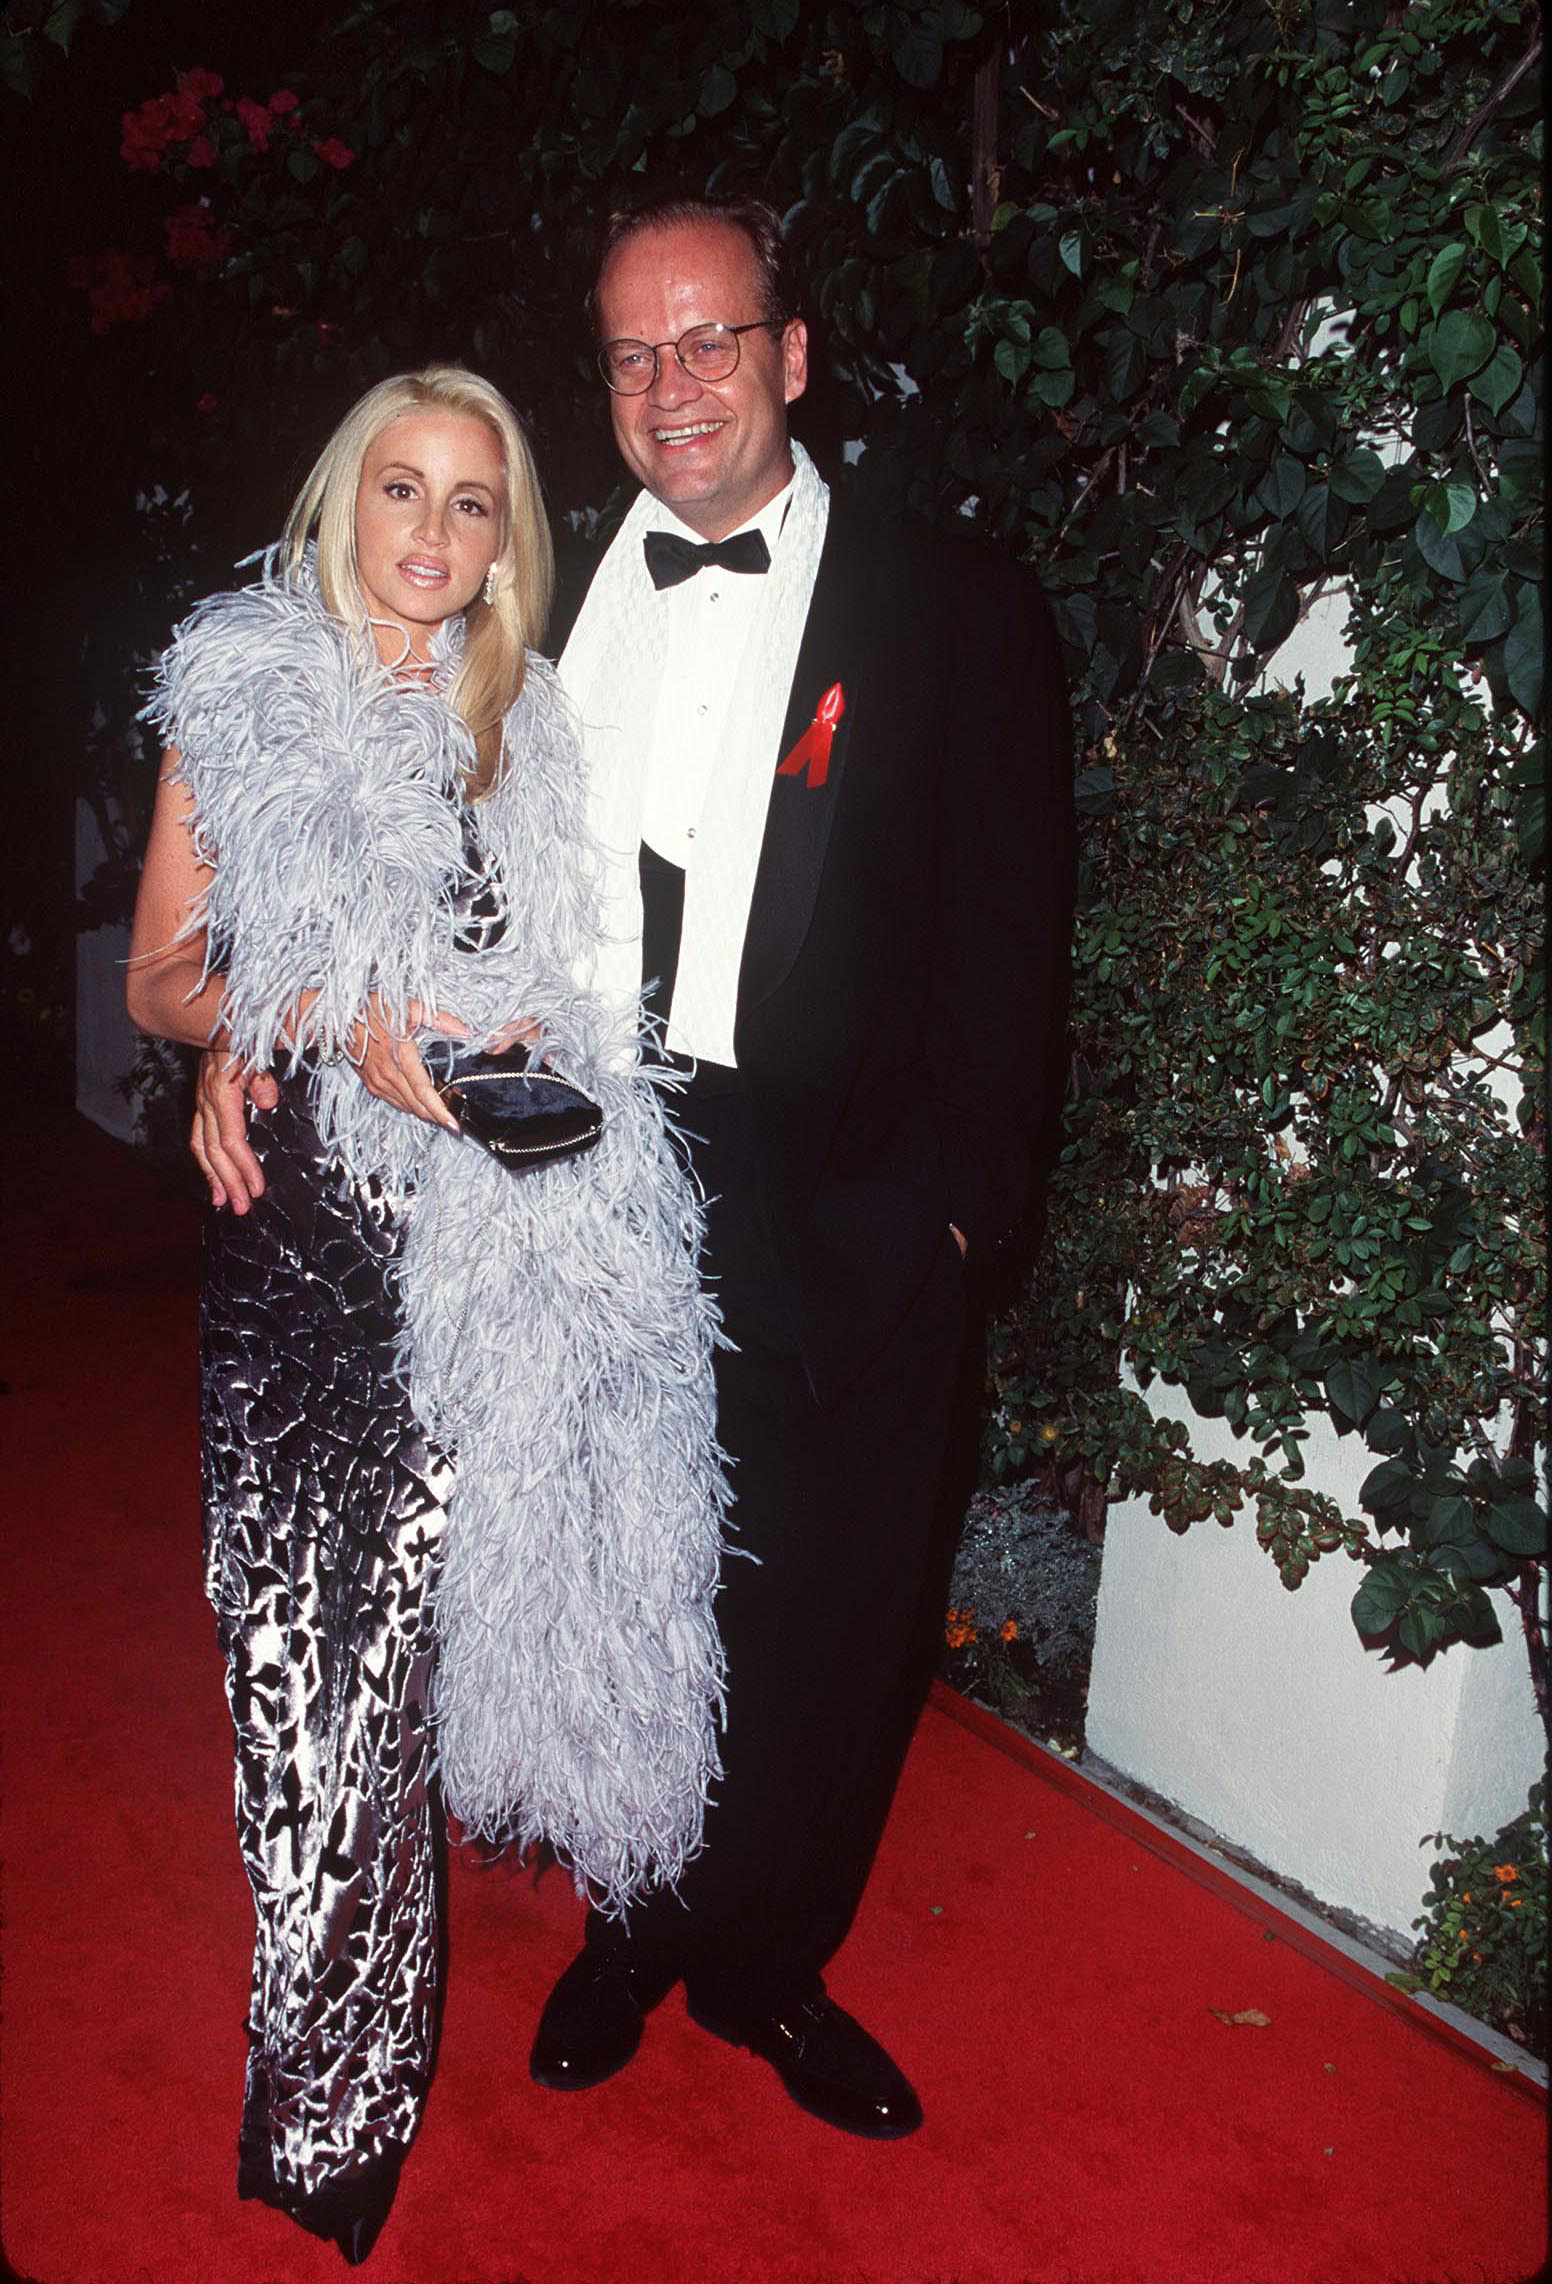 Kelsey Grammer and wife Camille Grammer arrive at the 49th Annual Primetime Emmy Awards at the Pasadena Civic Auditorium in Pasadena, California, on Sept. 14, 1997.